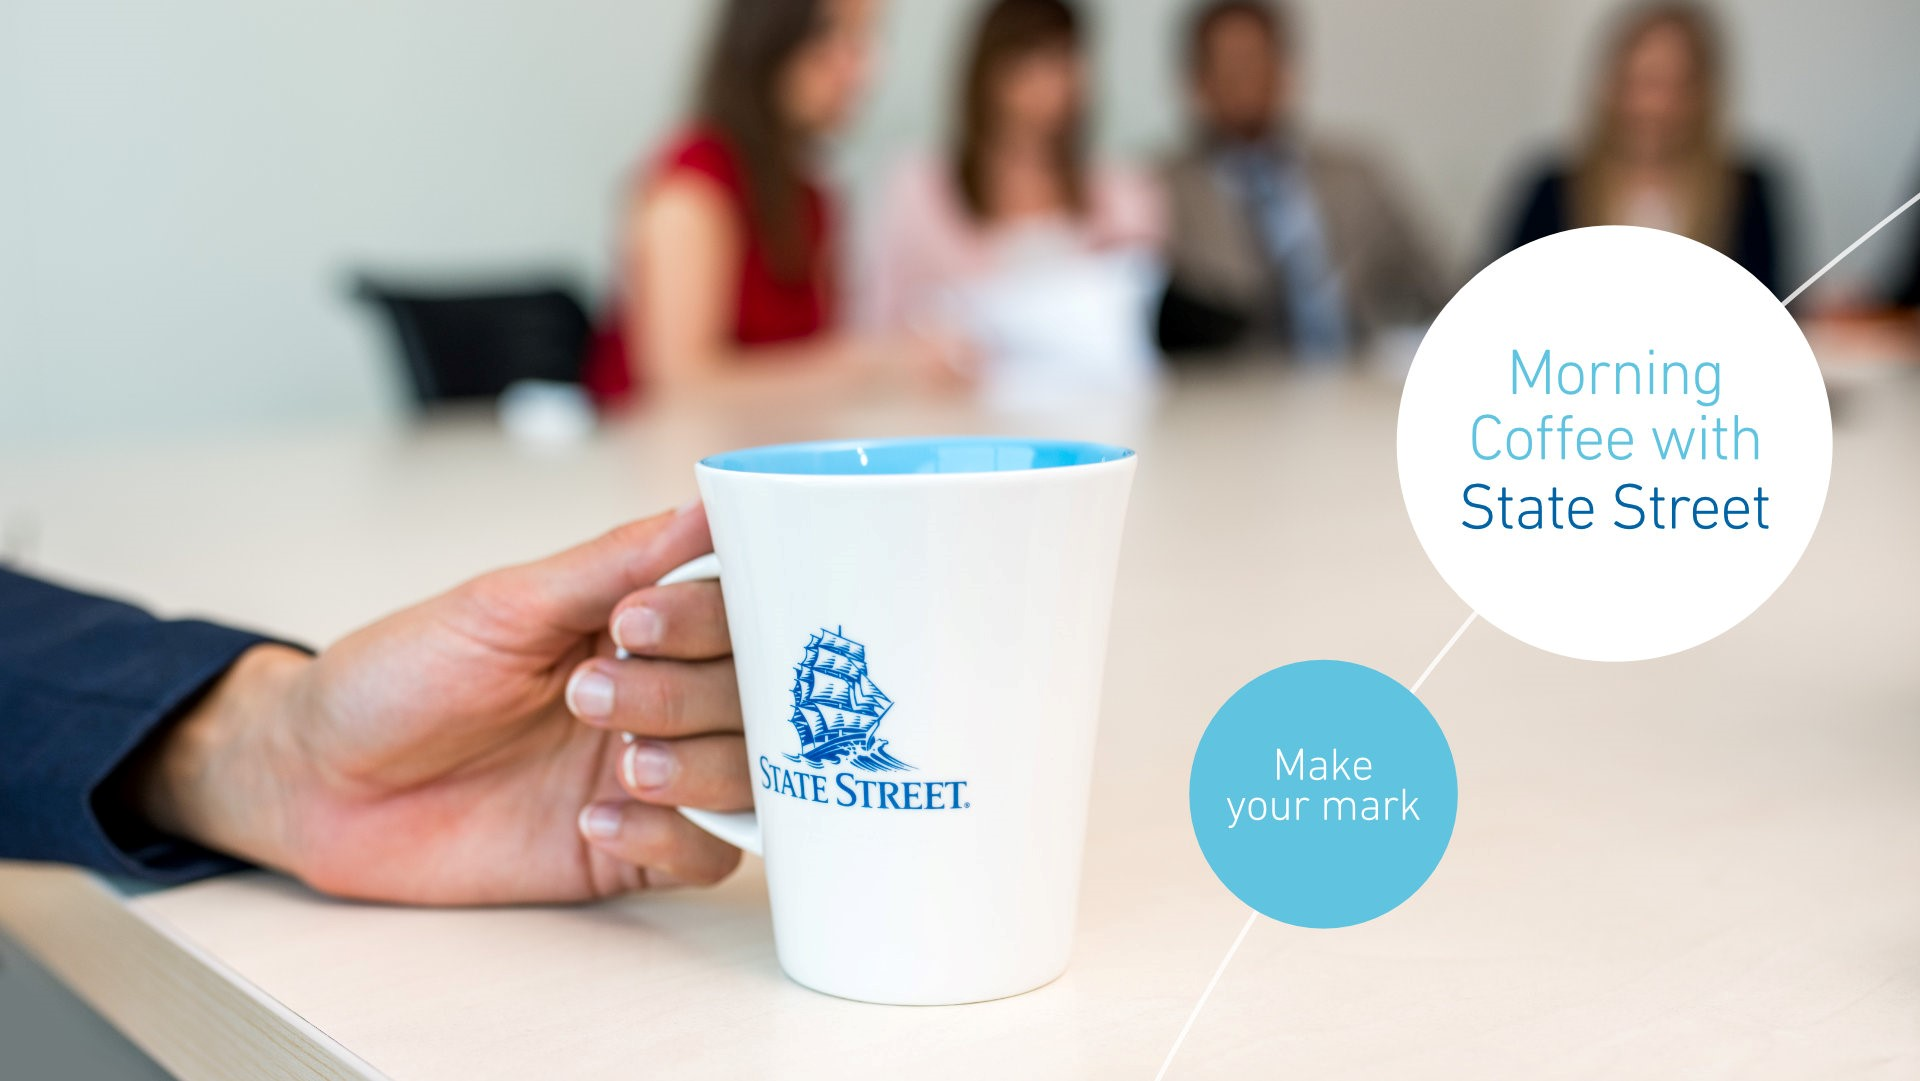 Winter Coffee with State Street Team is back!